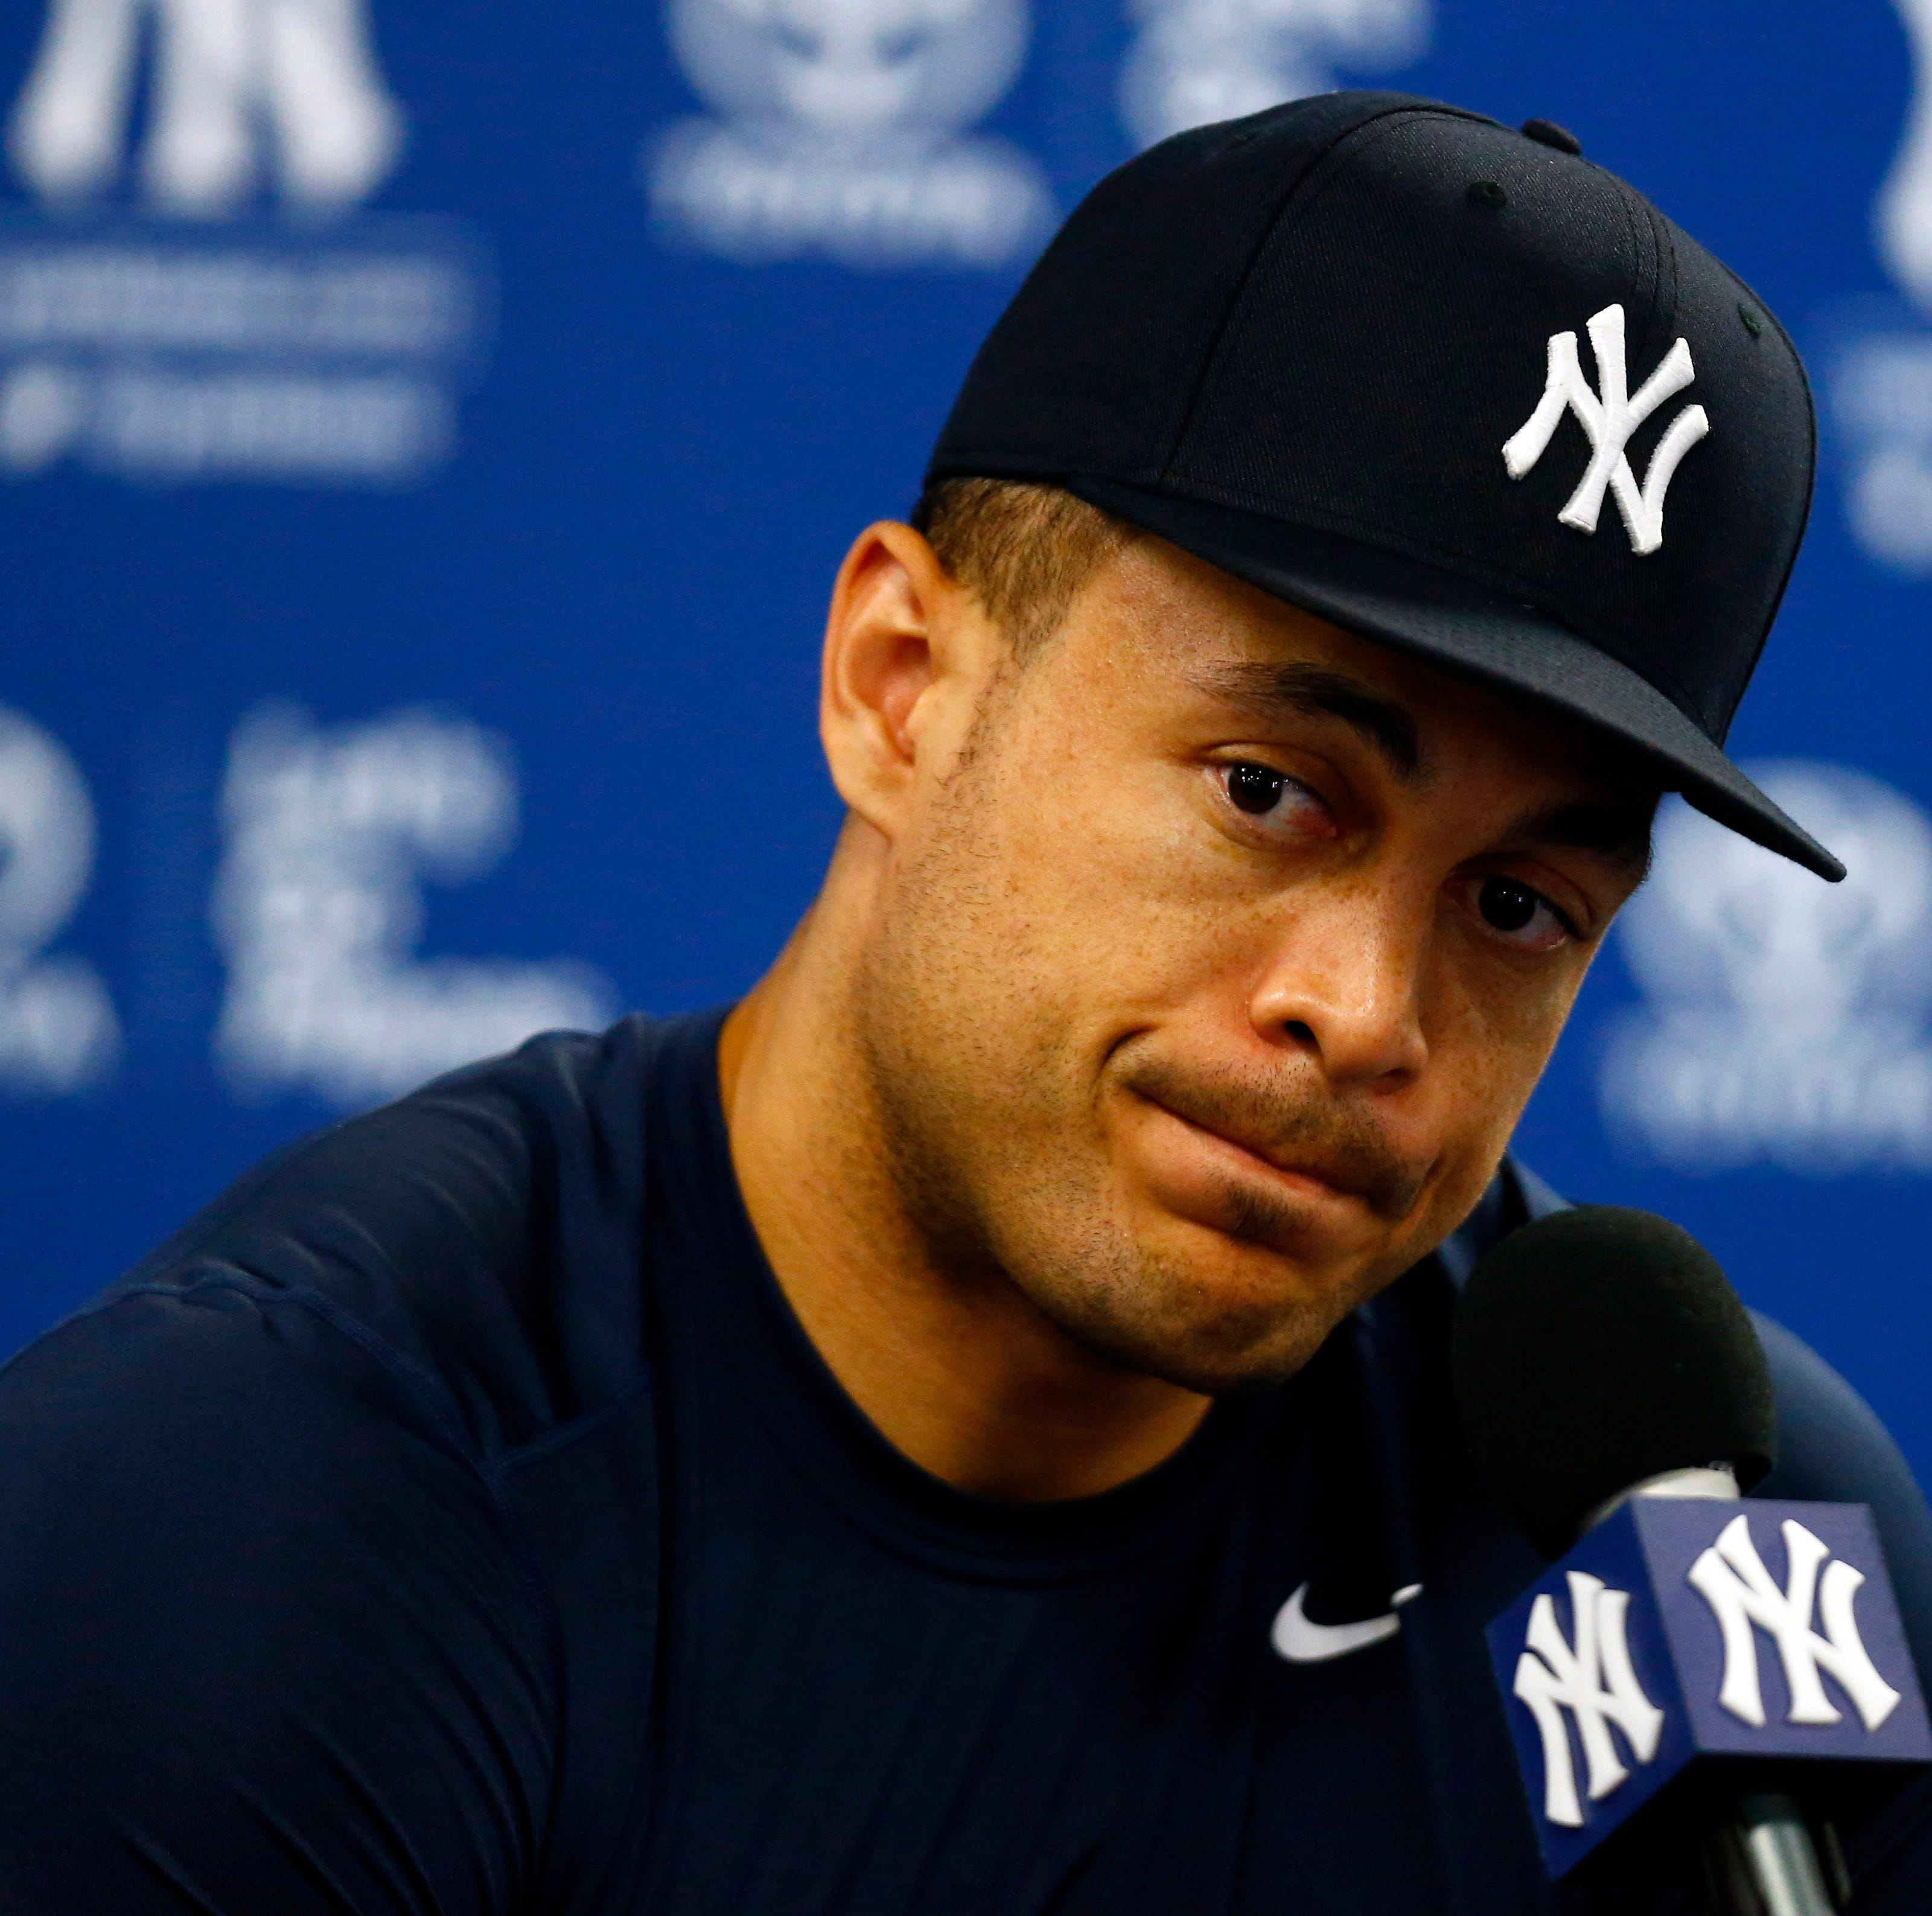 Giancarlo Stanton confident heading into second season with Yankees